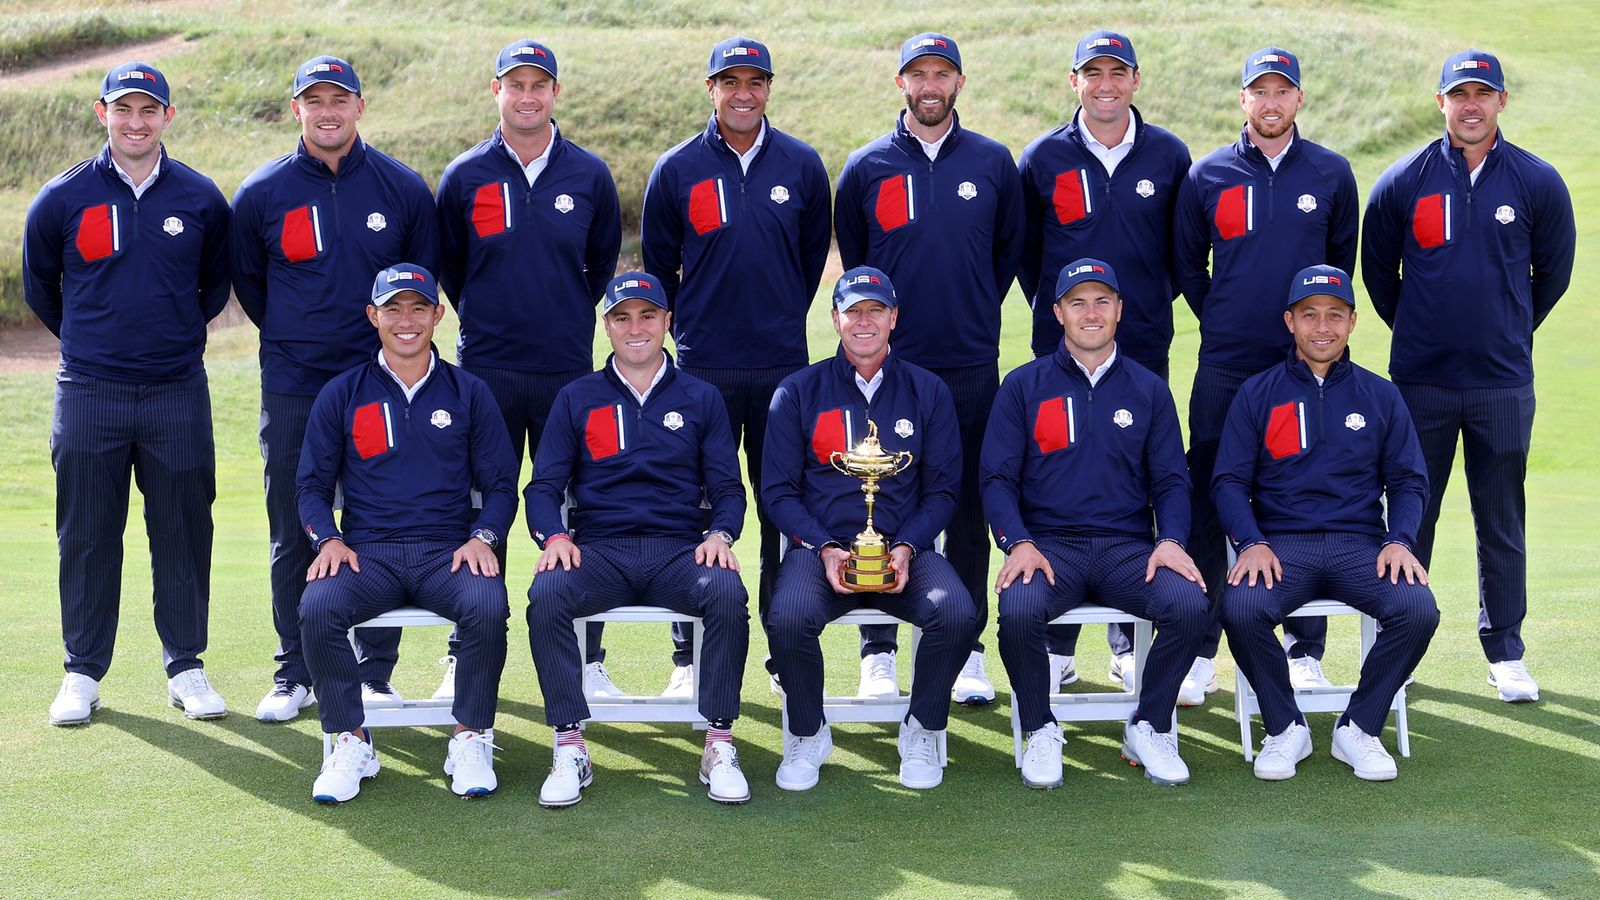 Ryder Cup 2020: Who will Steve Stricker pick to play for Team USA in Friday's foursomes?